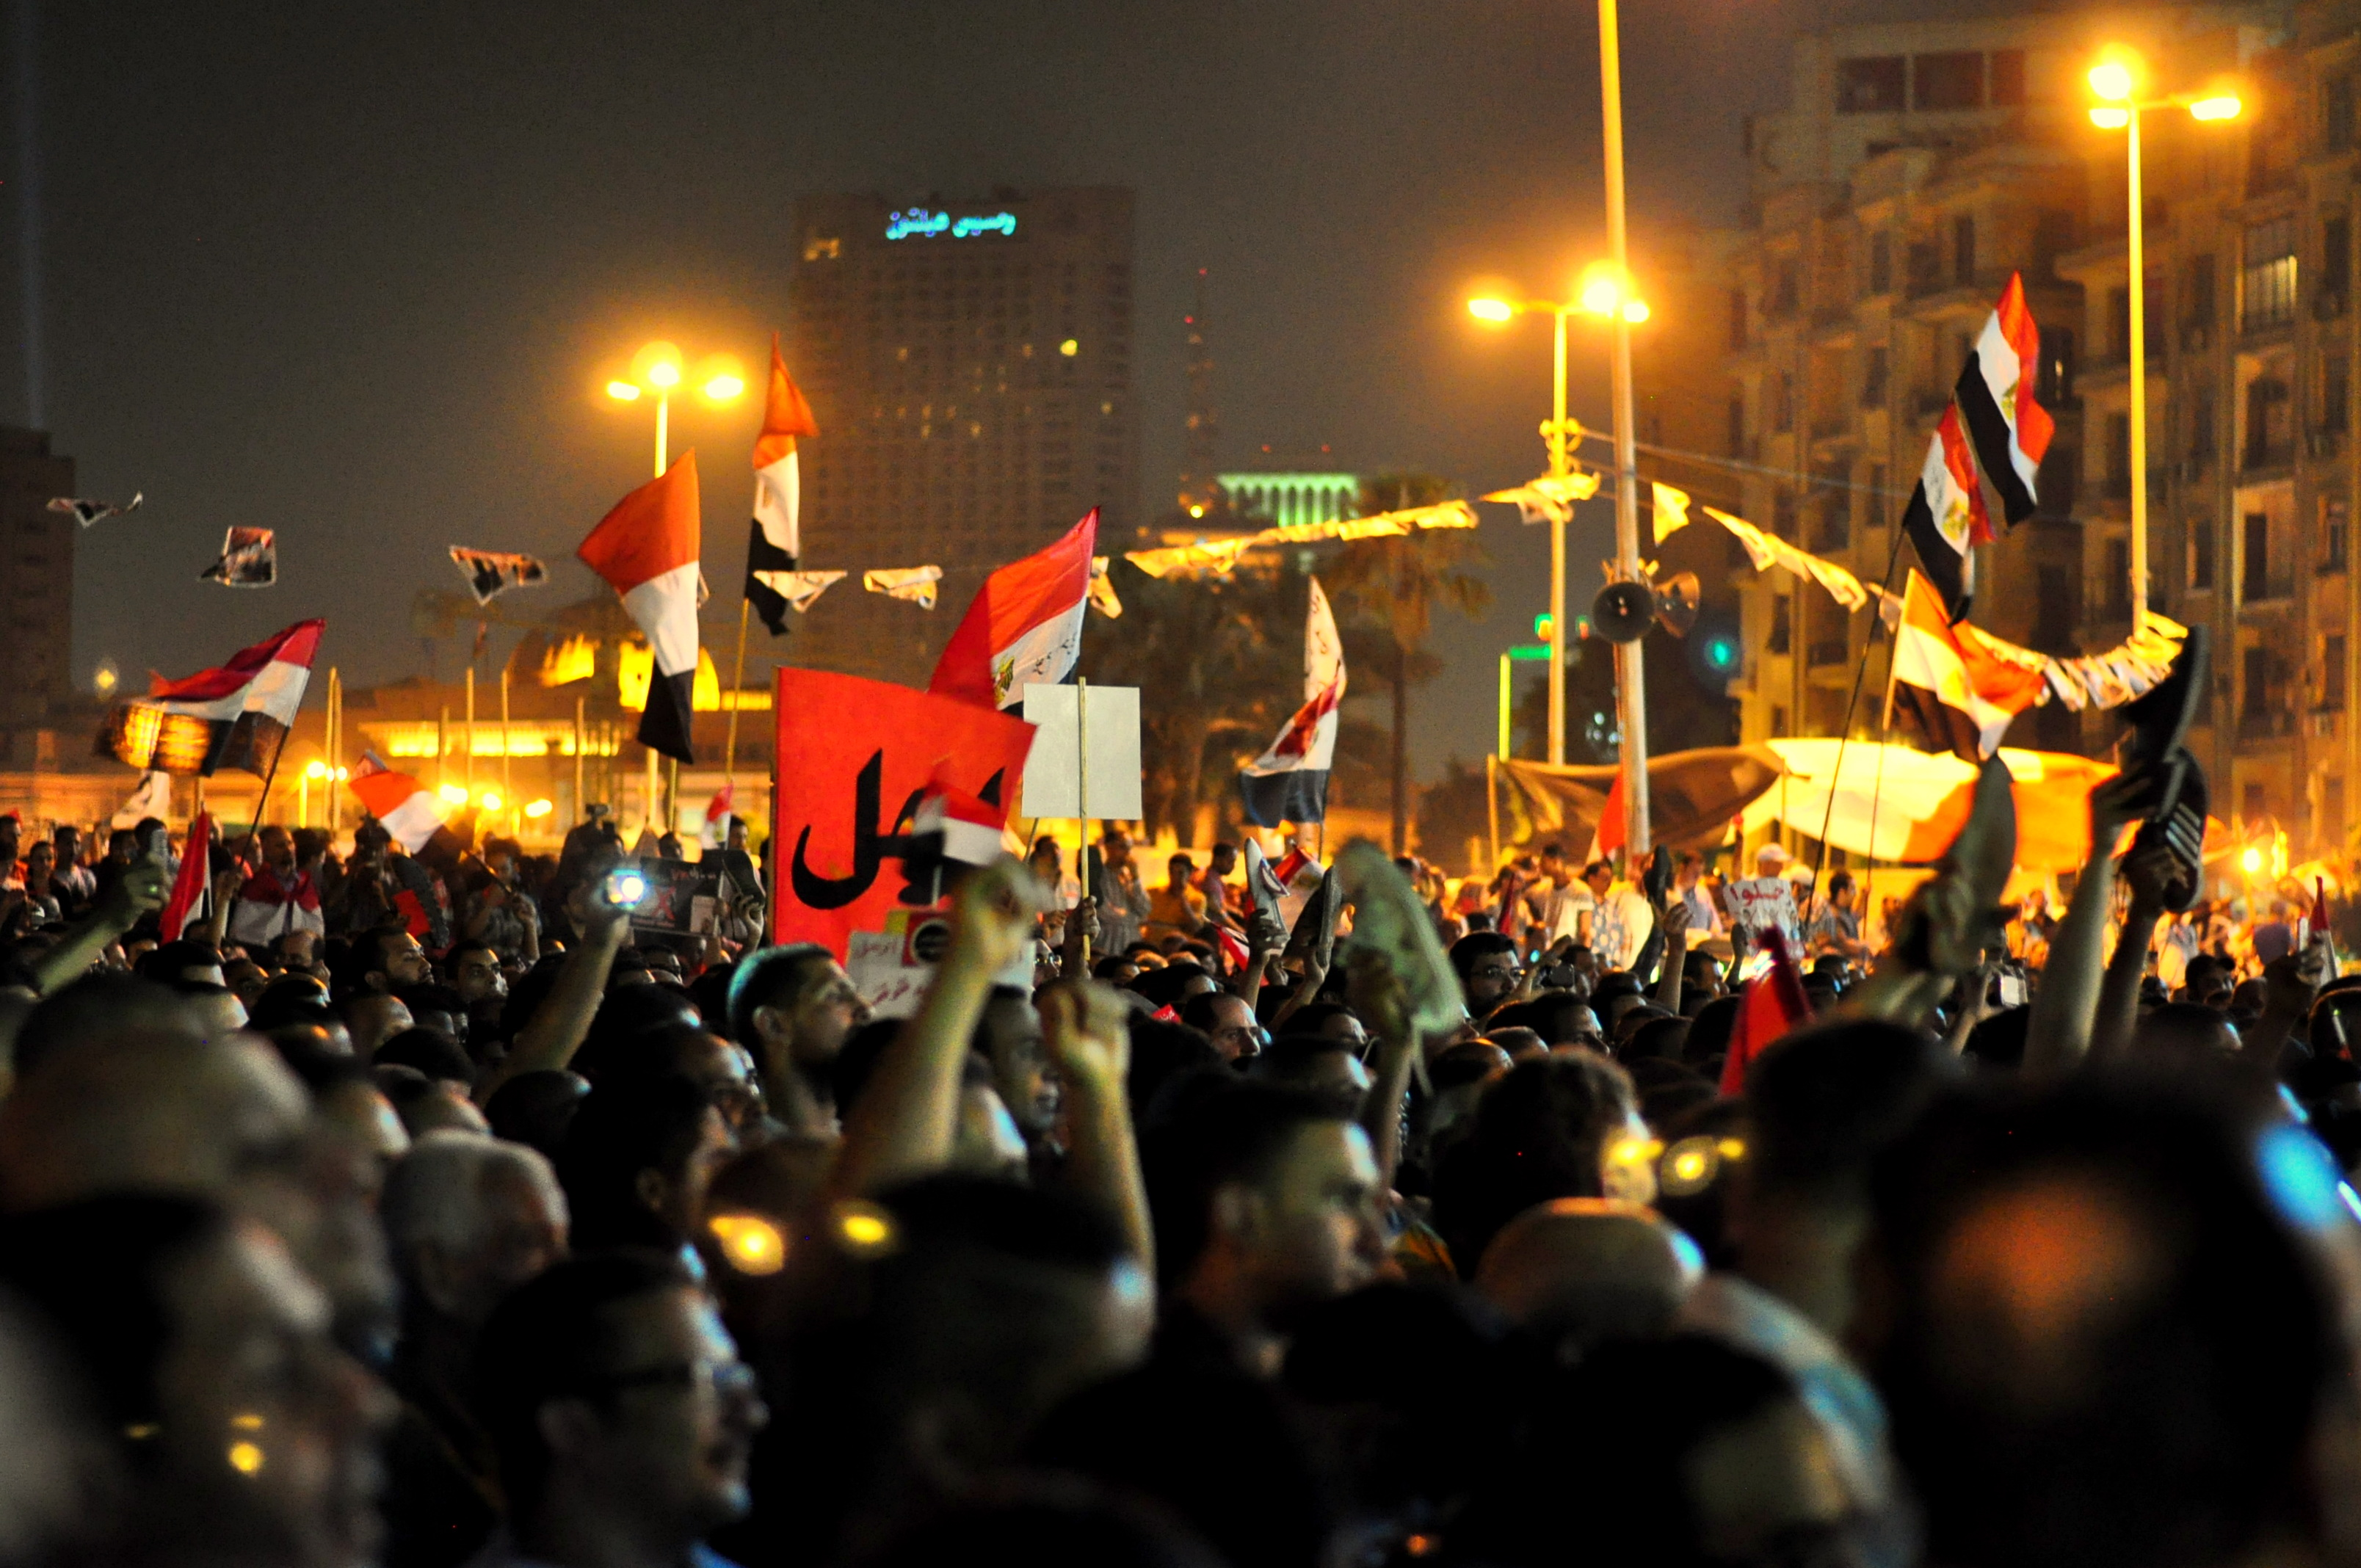 Angry protesters in Tahrir square react to President Morsi's speech Wednesday night.  By: Aaron T. Rose